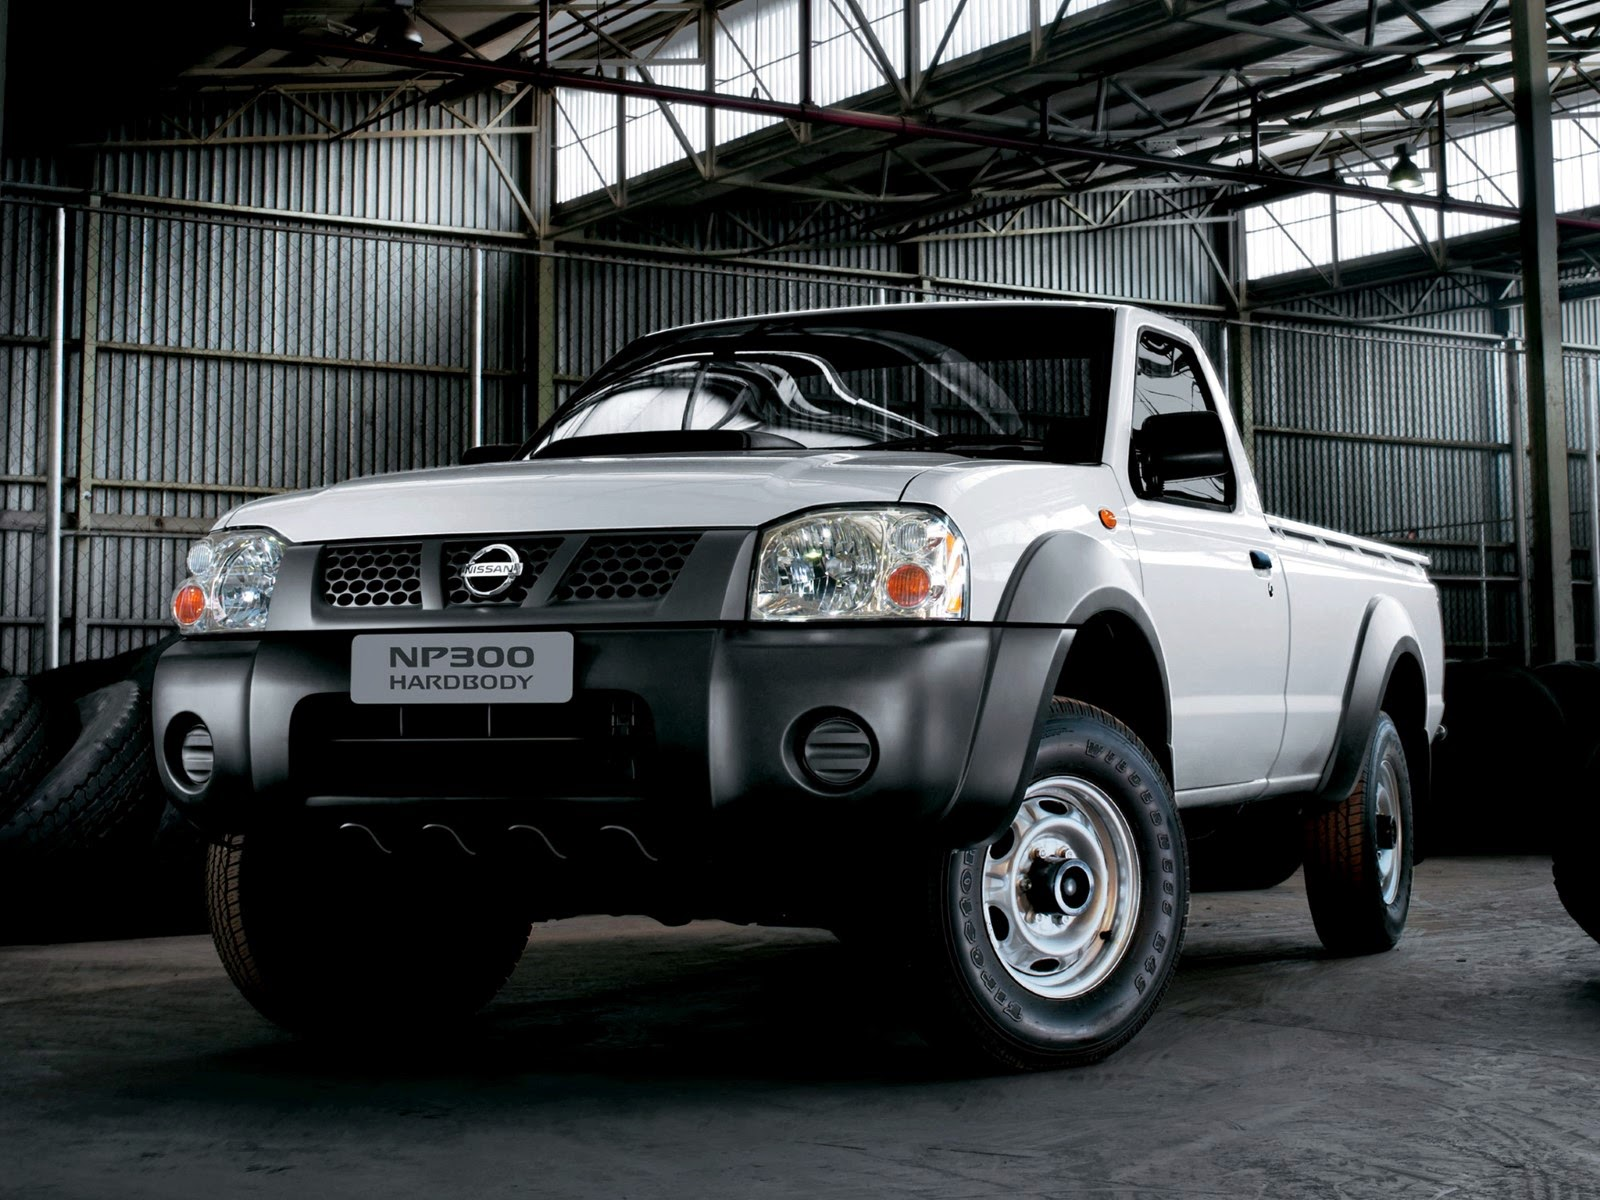 BEST CAR REVIEW: #76 Nissan NP300 Hardbody series – The